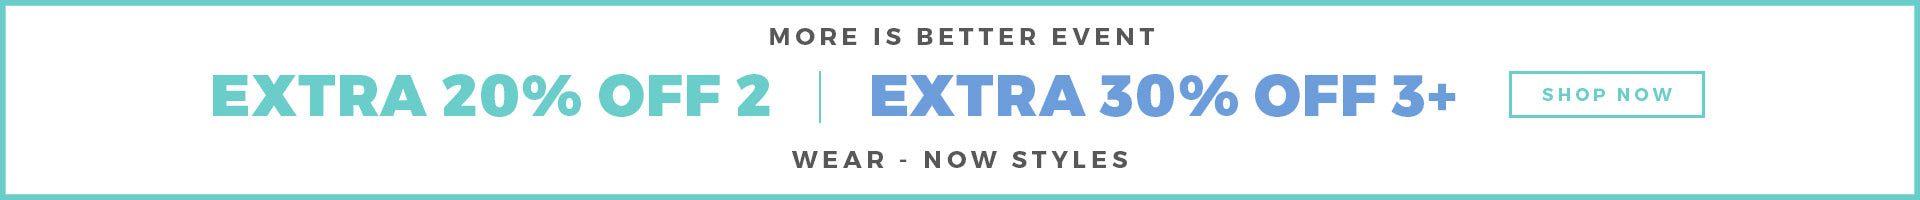 MORE IS BETTER EVENT EXTRA 20% OFF 2 EXTRA 30% OFF 3+ WEAR - NOW STYLES